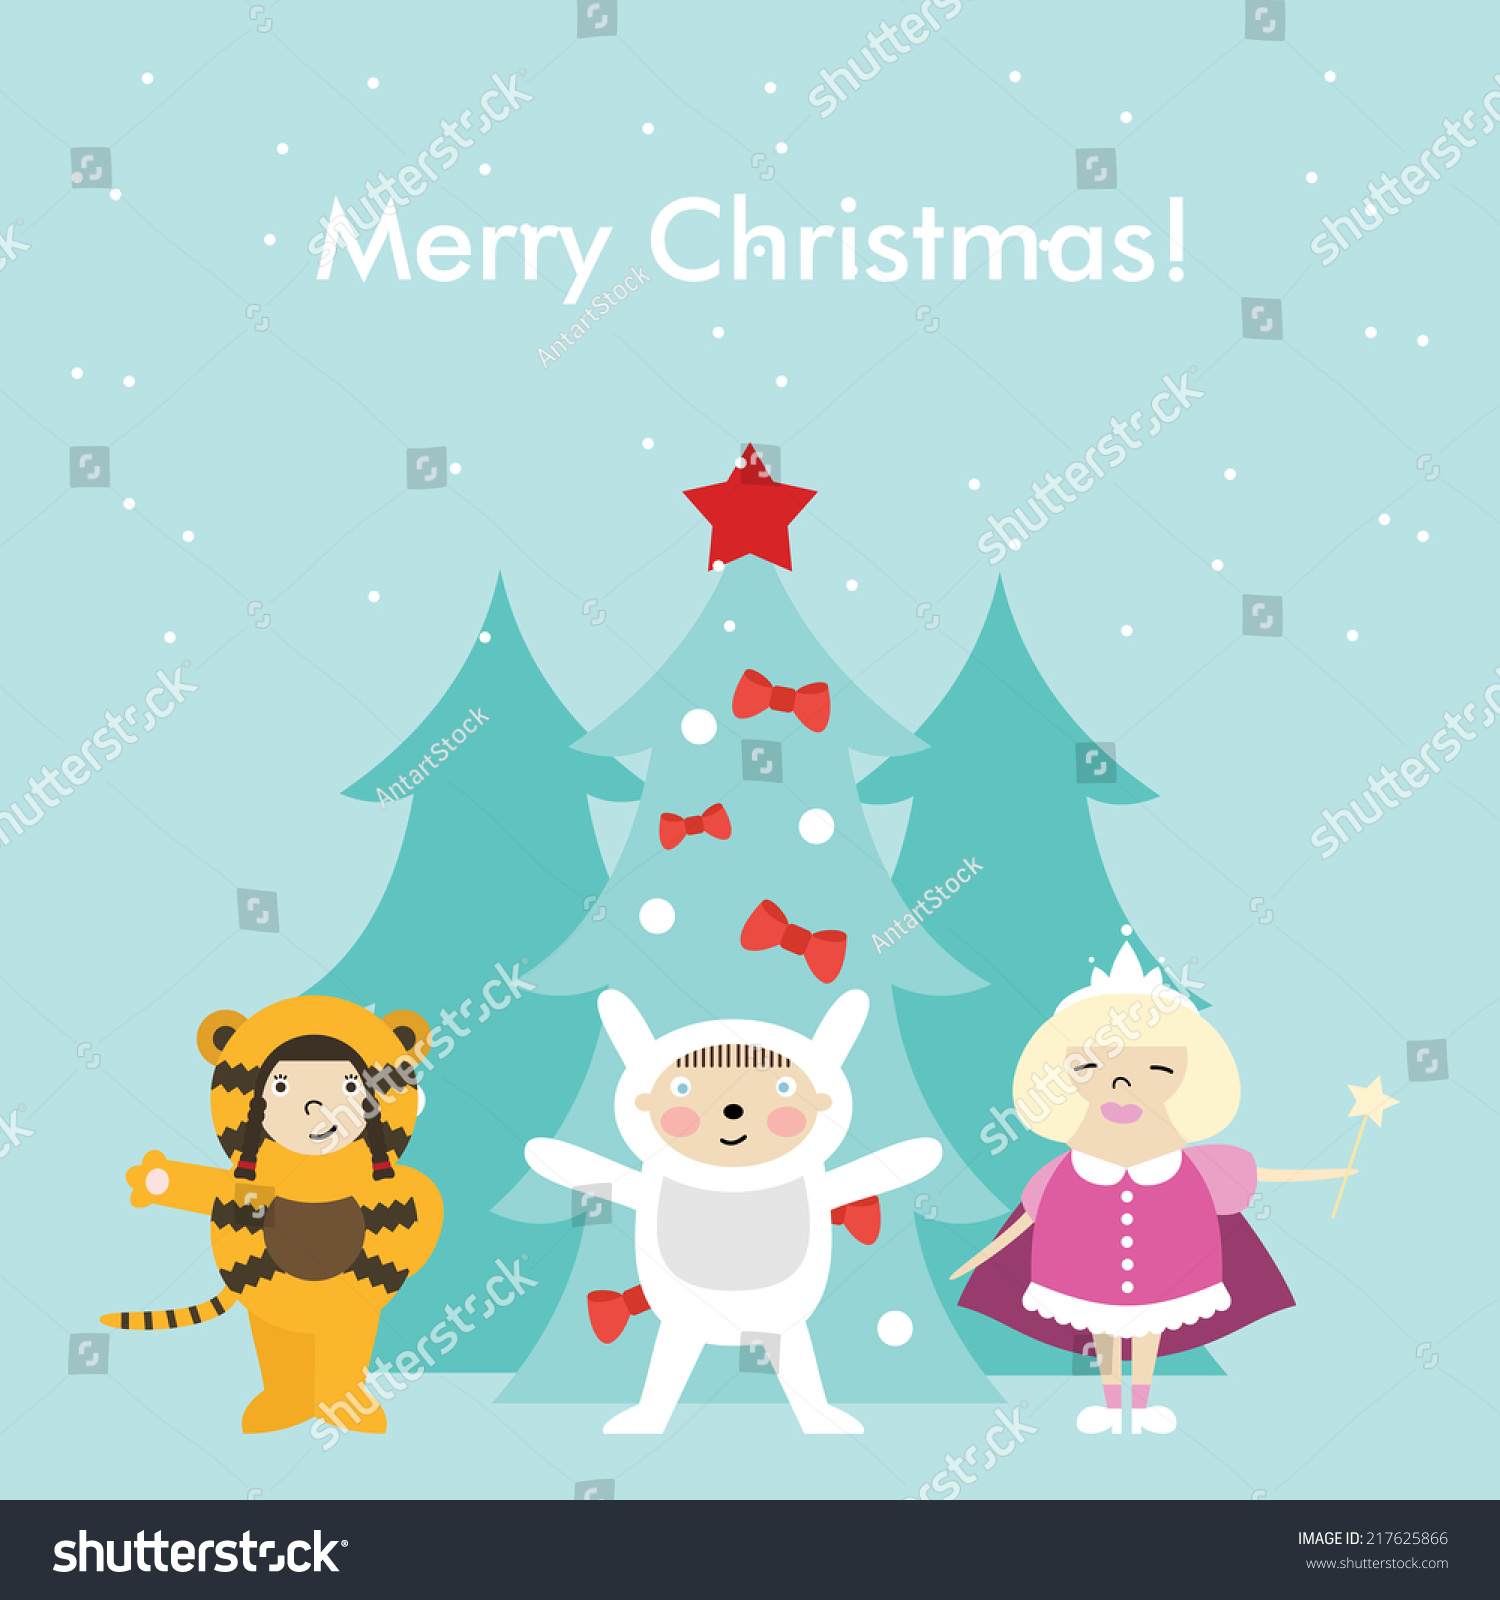 Christmas greeting card characters merry christmas stock vector christmas greeting card and characters merry christmas and holidays wish vector background kristyandbryce Gallery